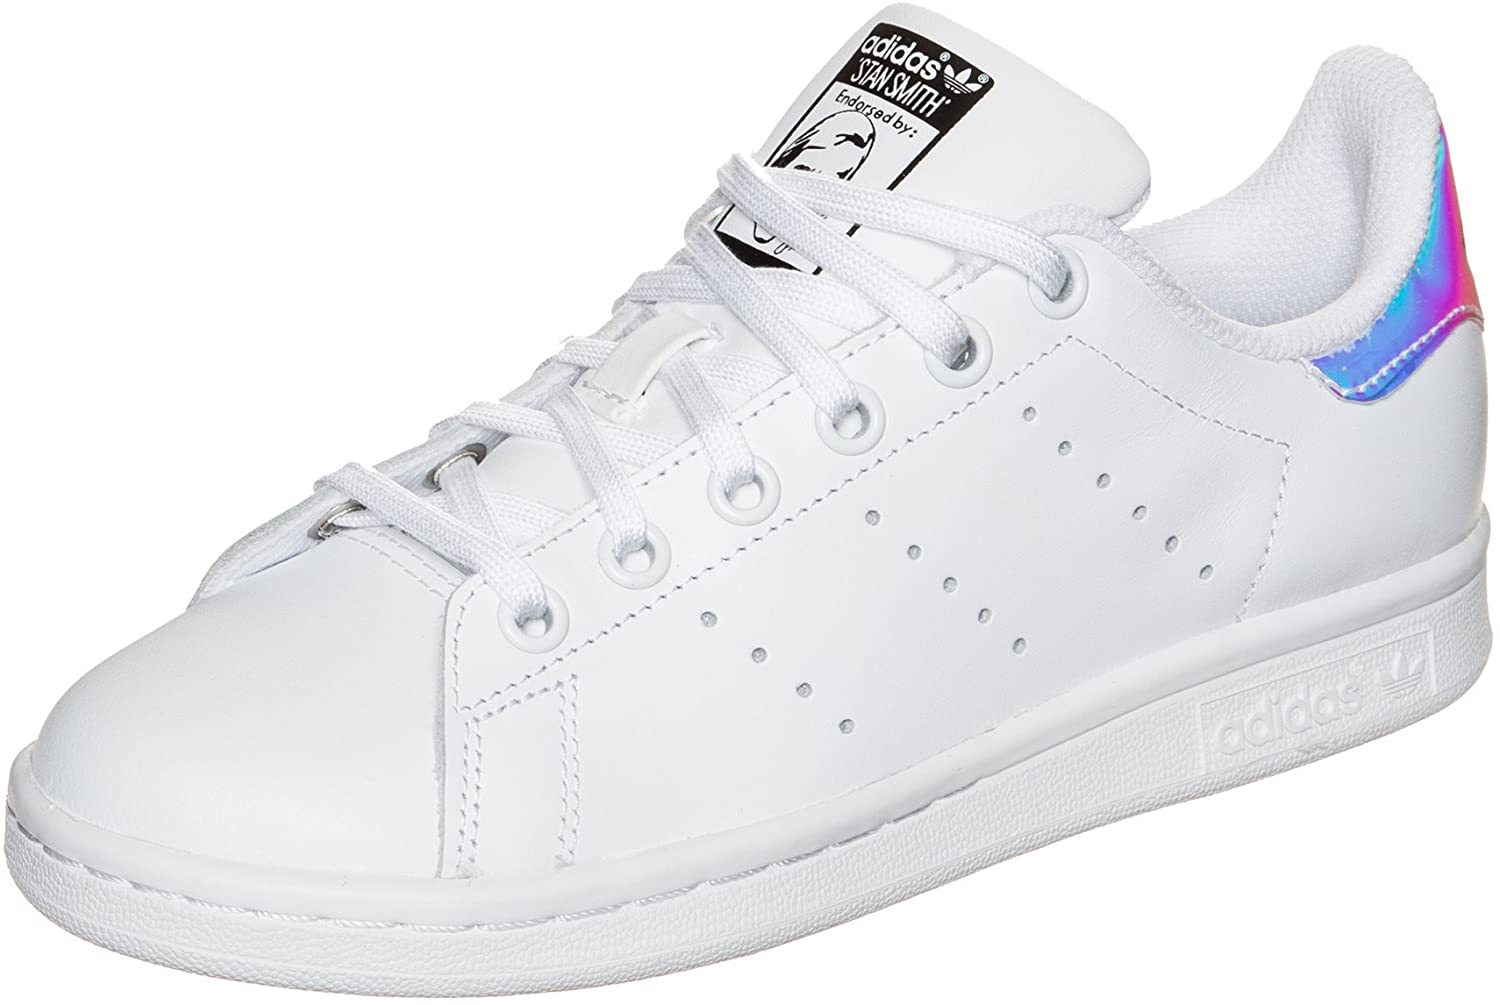 adidas - Stan Smith J - AQ6272 - Color: White - Size: 5.5 Big Kid